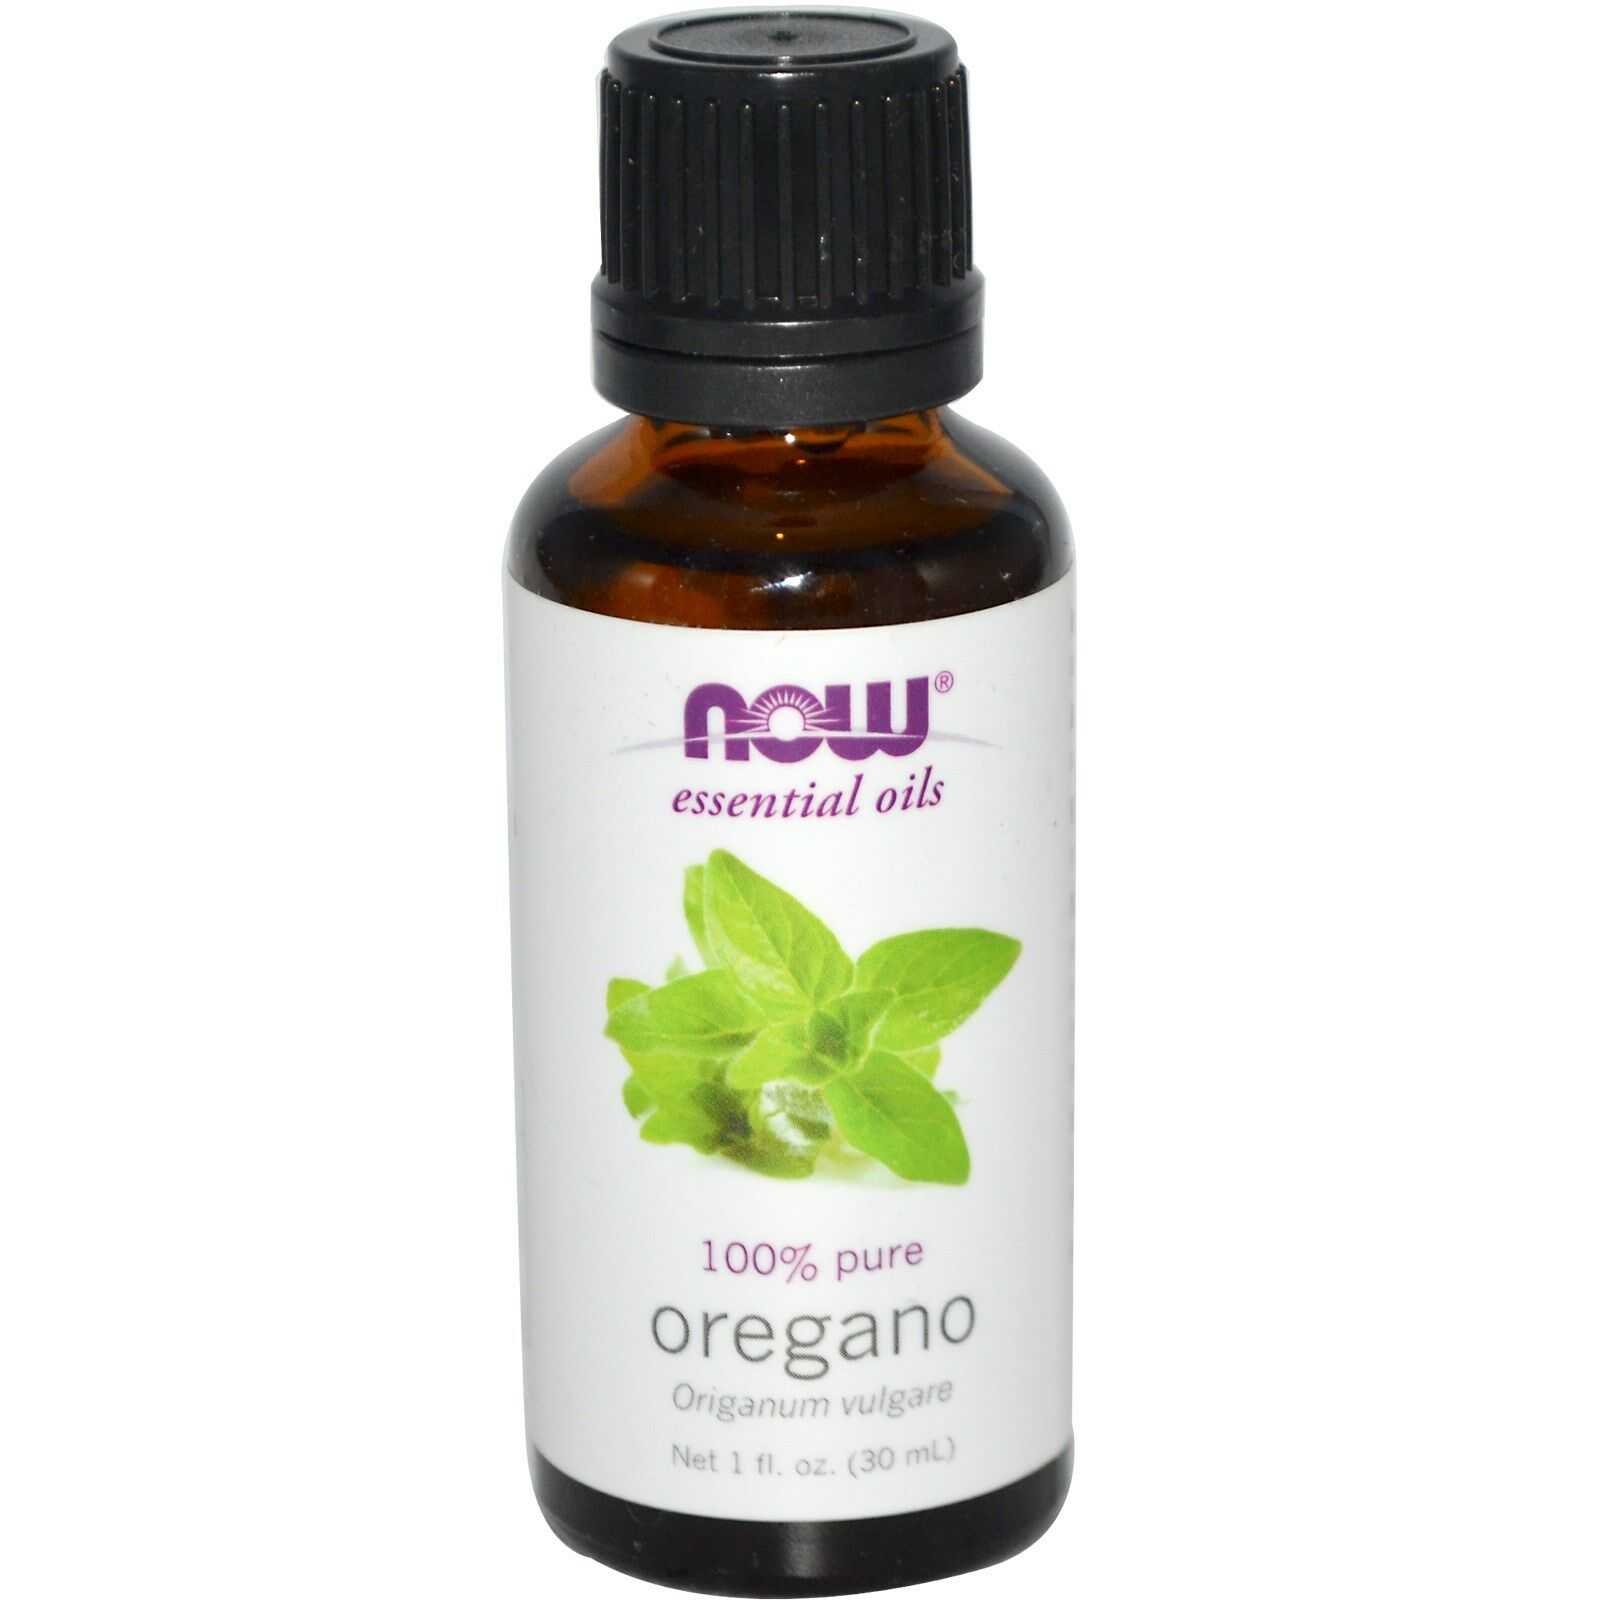 NOW Foods 1 oz Essential Oils and Blend Oils - FREE SHIPPING! Oregano